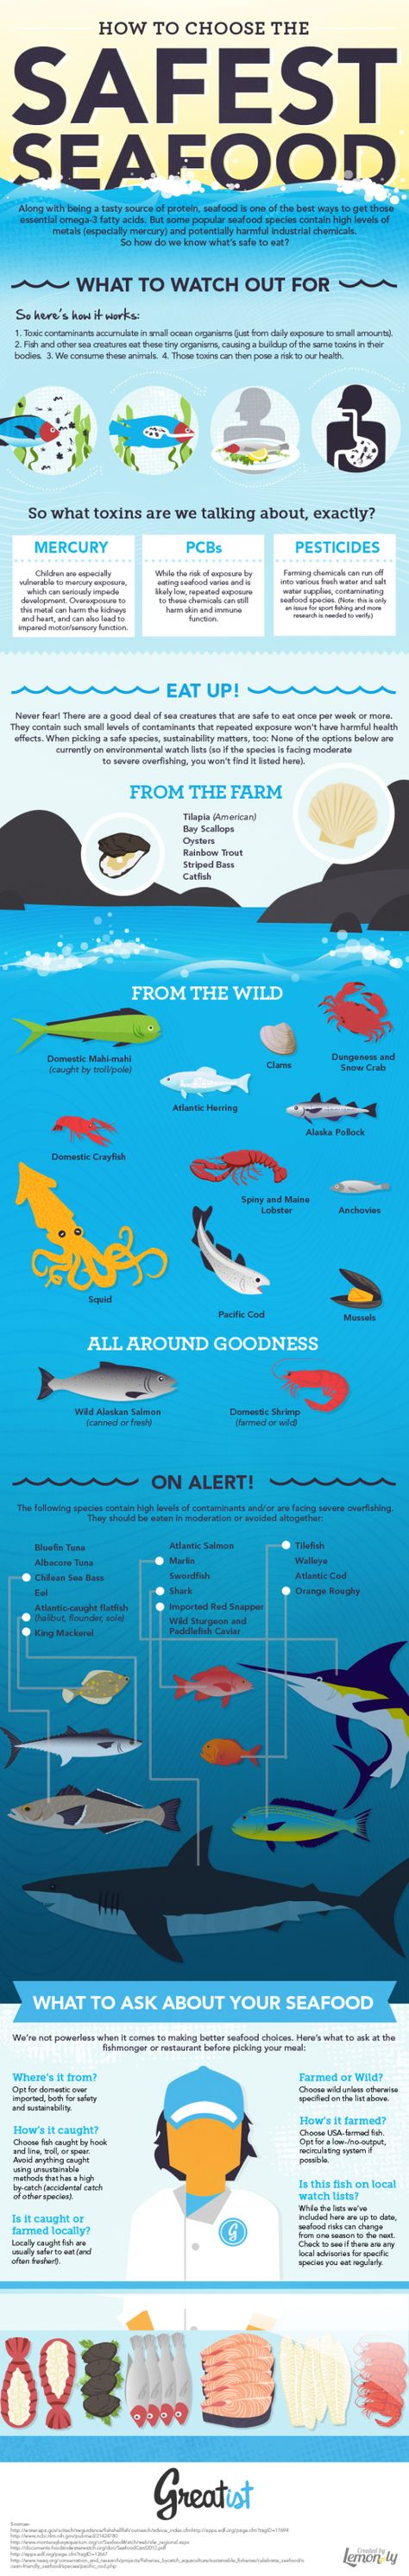 How to Choose the Safest Seafood [Infographic] | Greatist